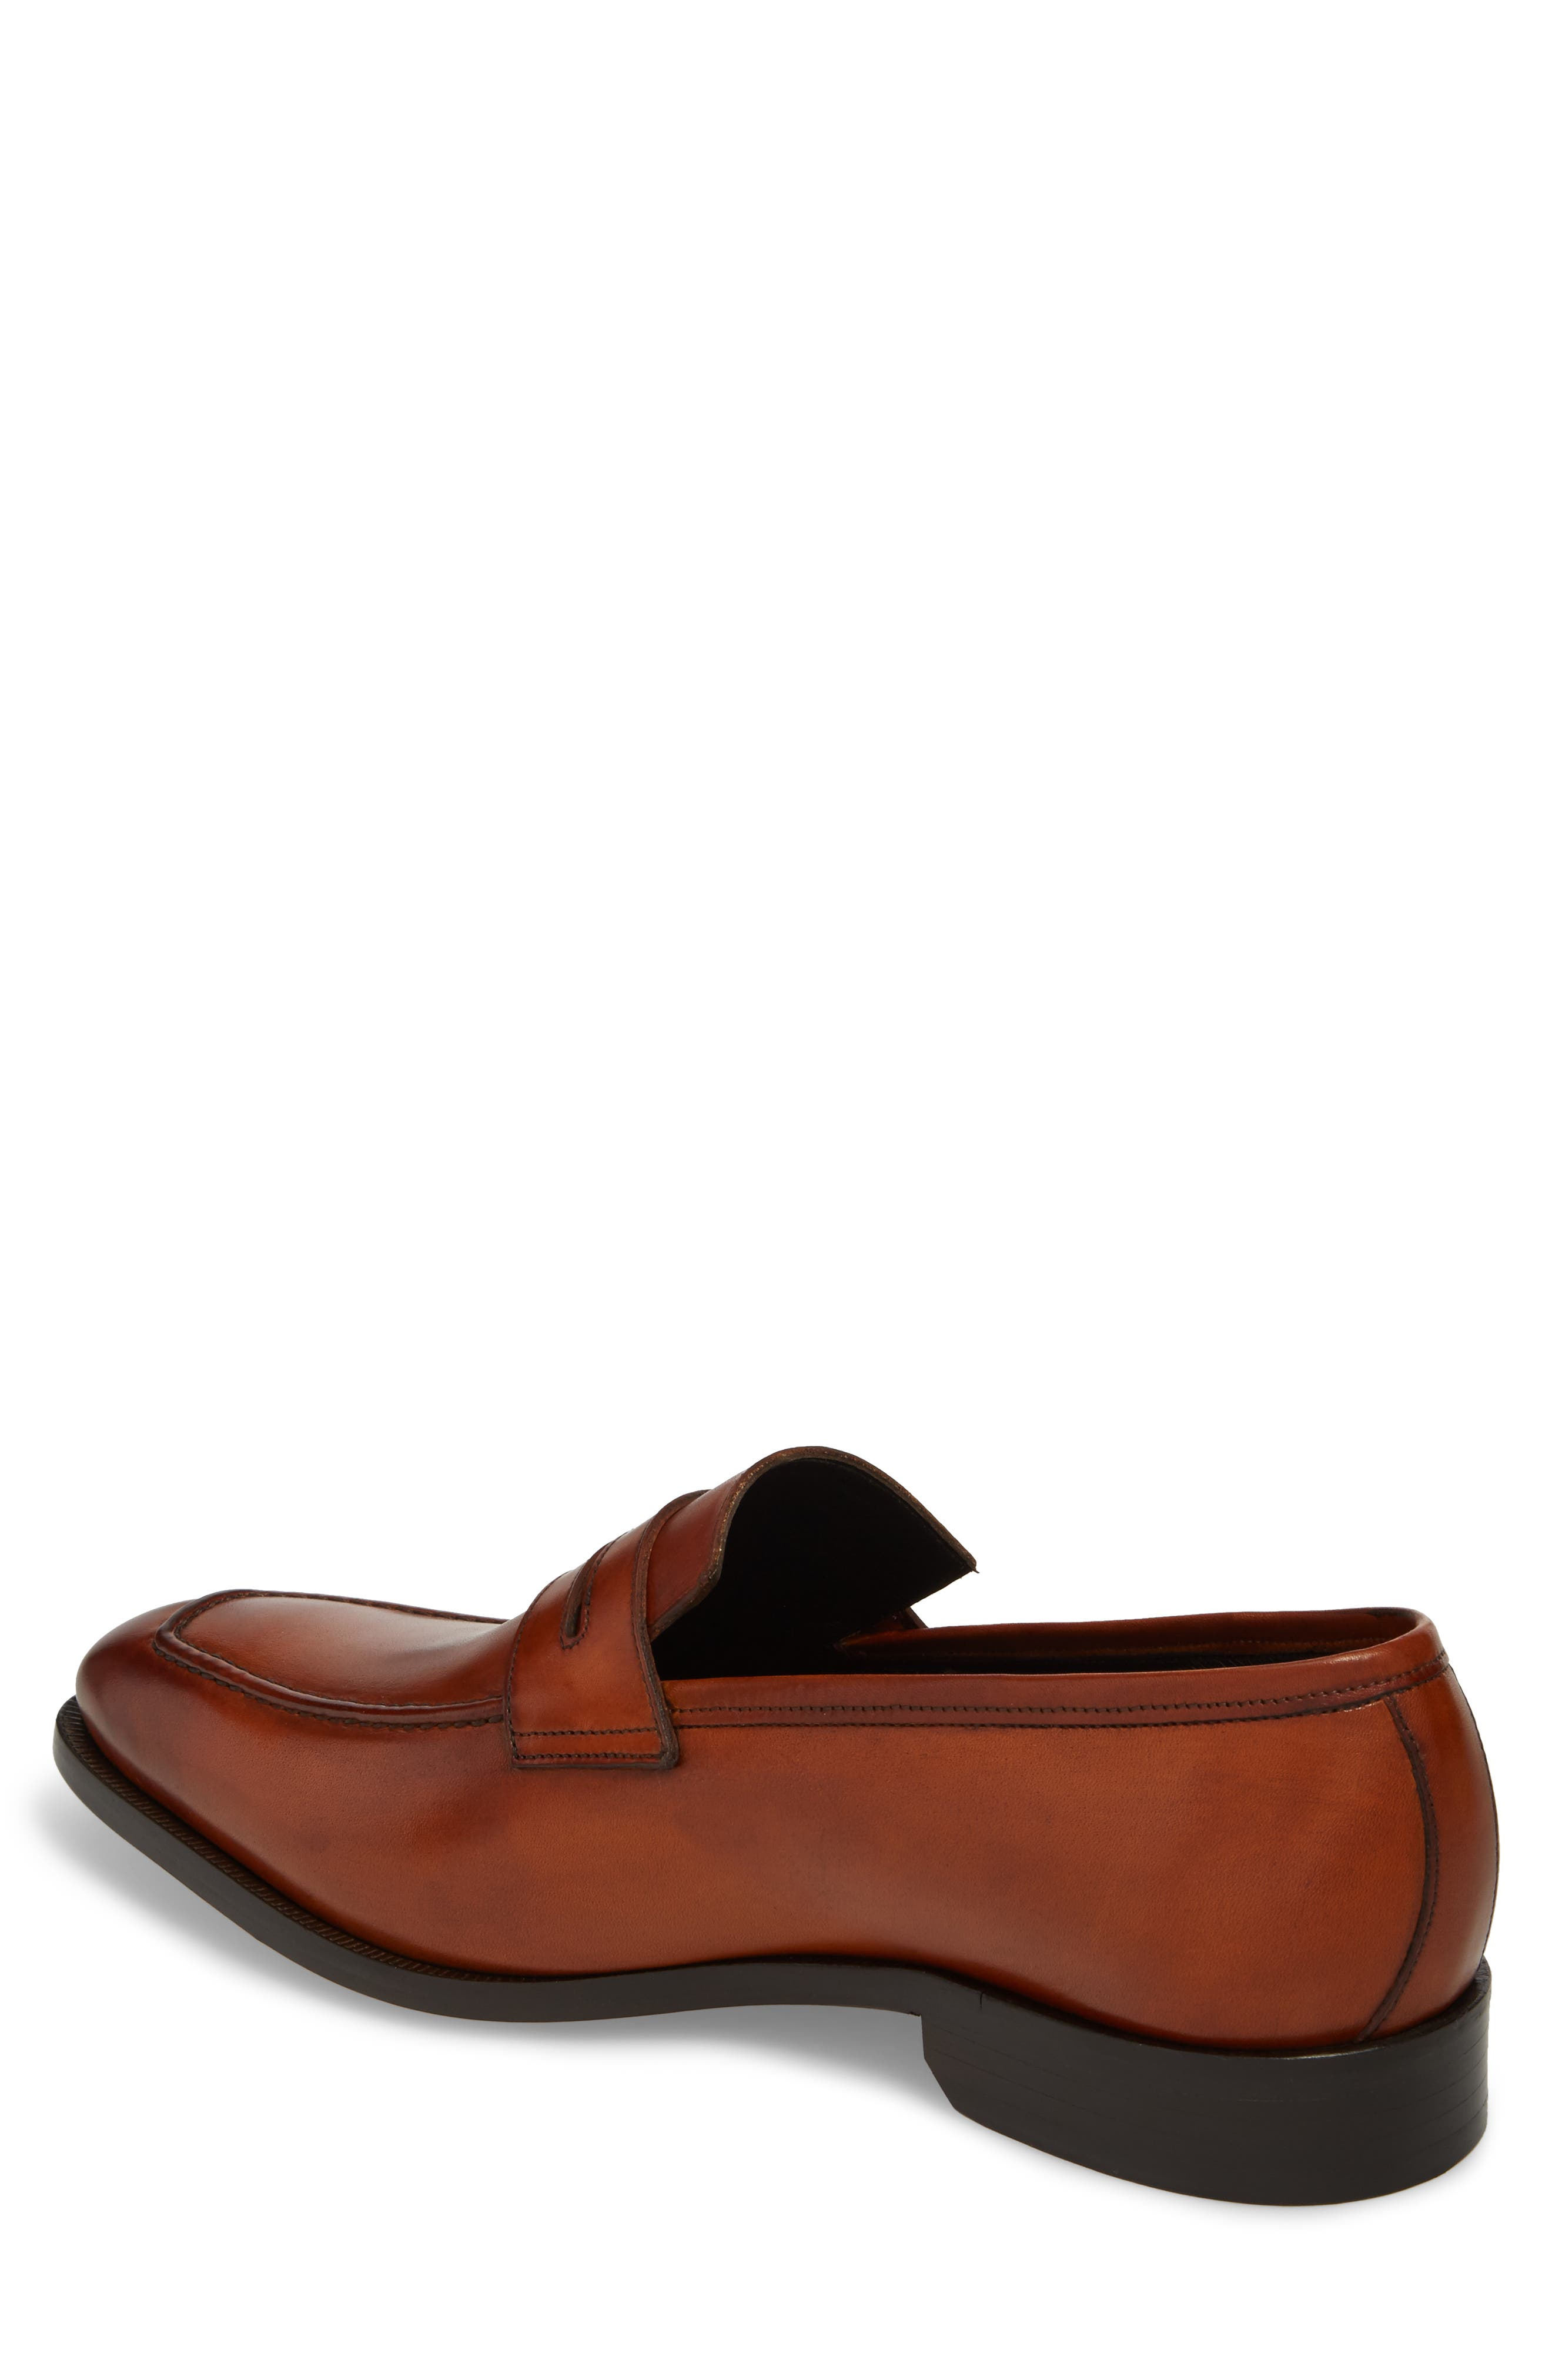 Eastwood Apron Toe Penny Loafer,                             Alternate thumbnail 2, color,                             231